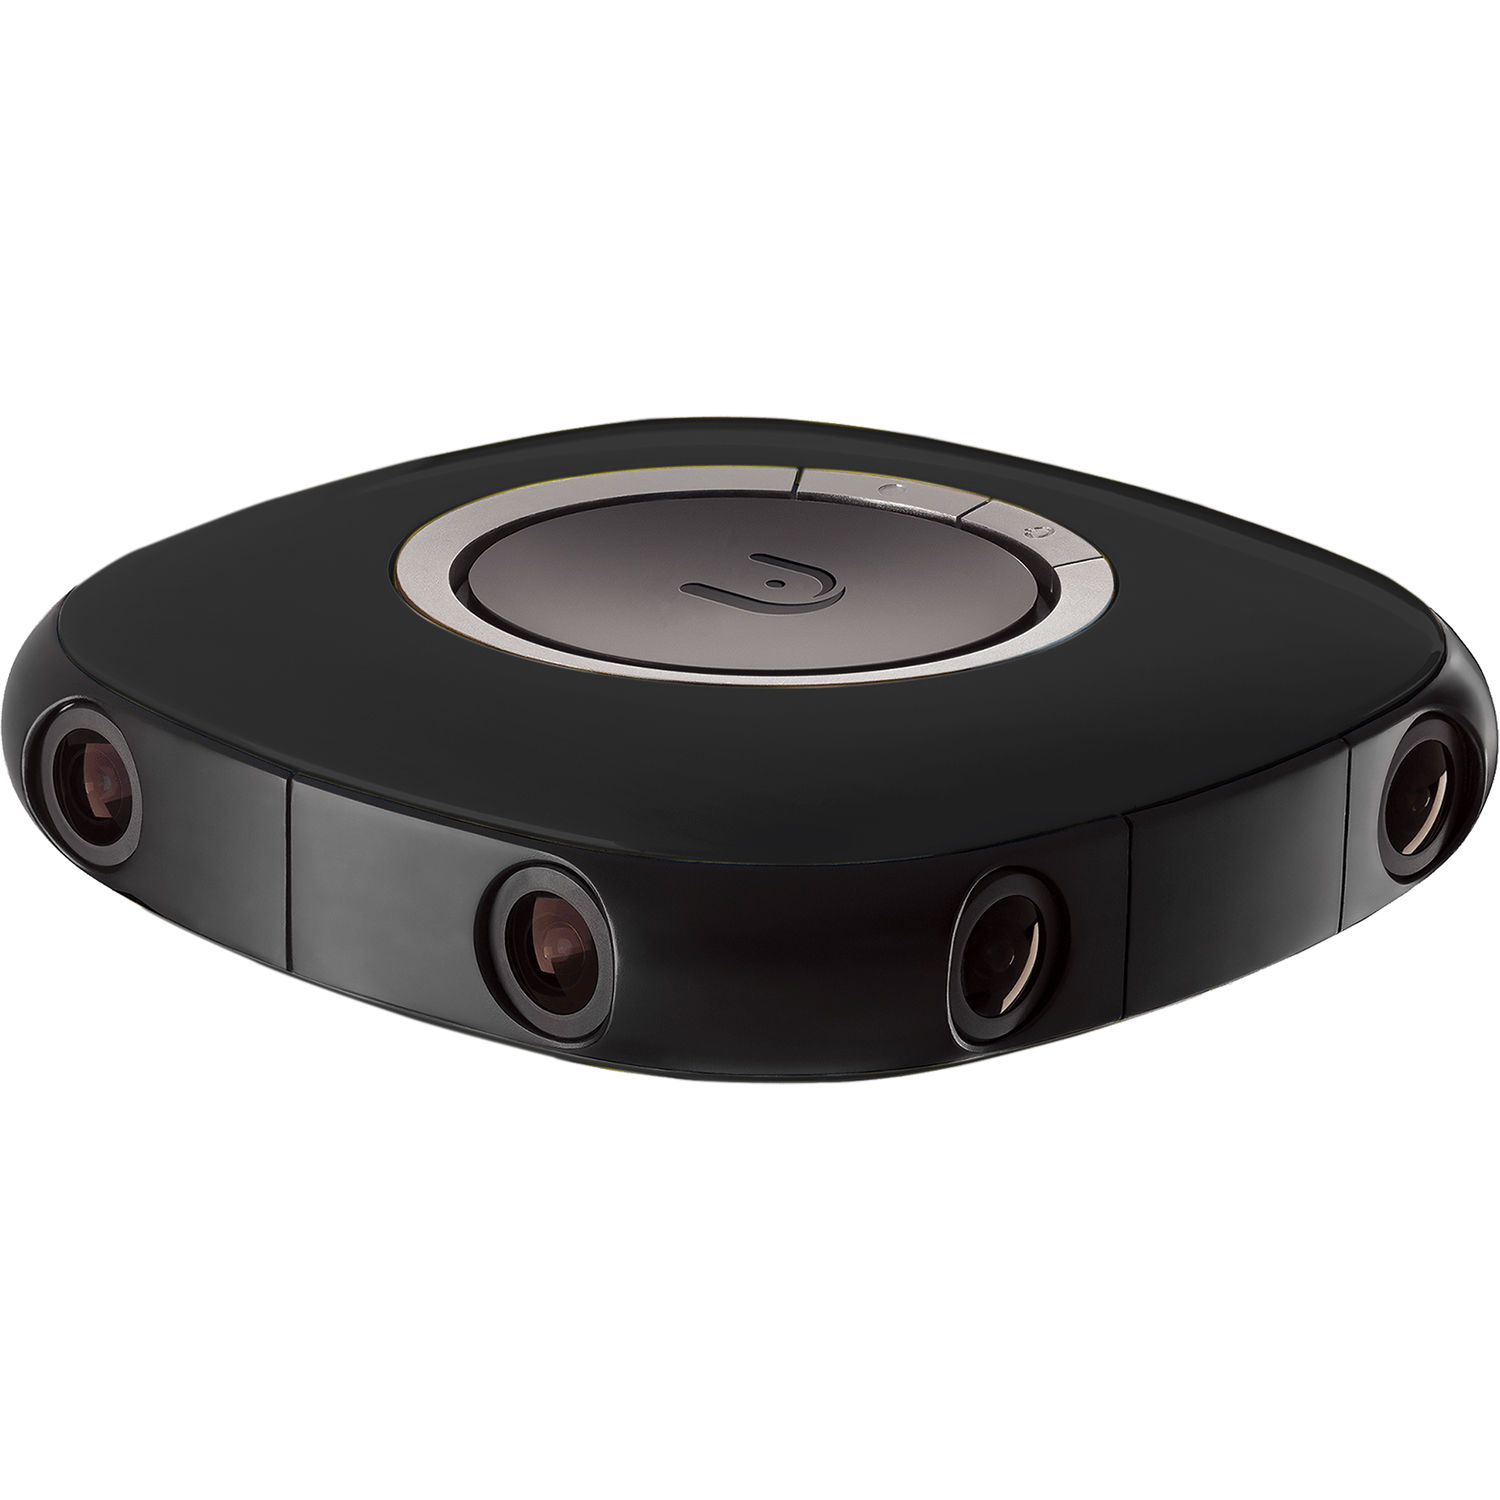 Vuze 4K 3D 360 Spherical VR Camera (Black) VUZE-1-BLK B